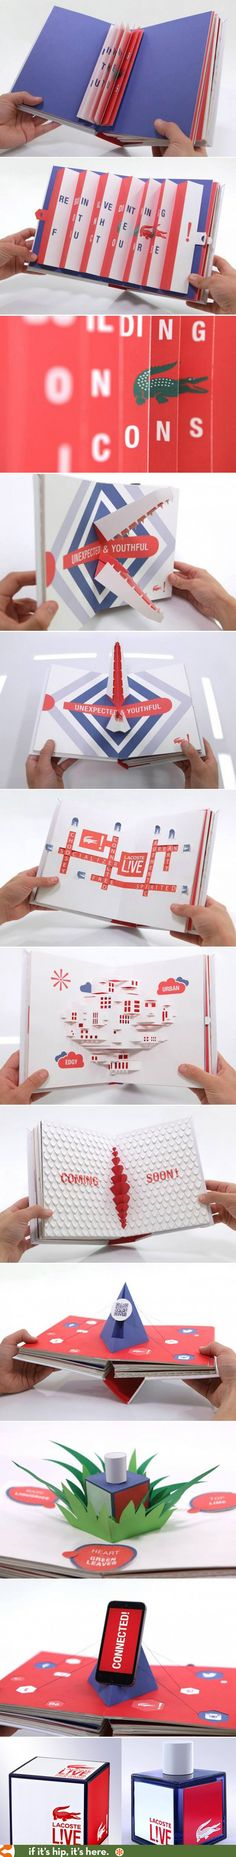 Lacoste Paper Art Pop-Up Book created for the launch of their new men's fragrance LIVE!